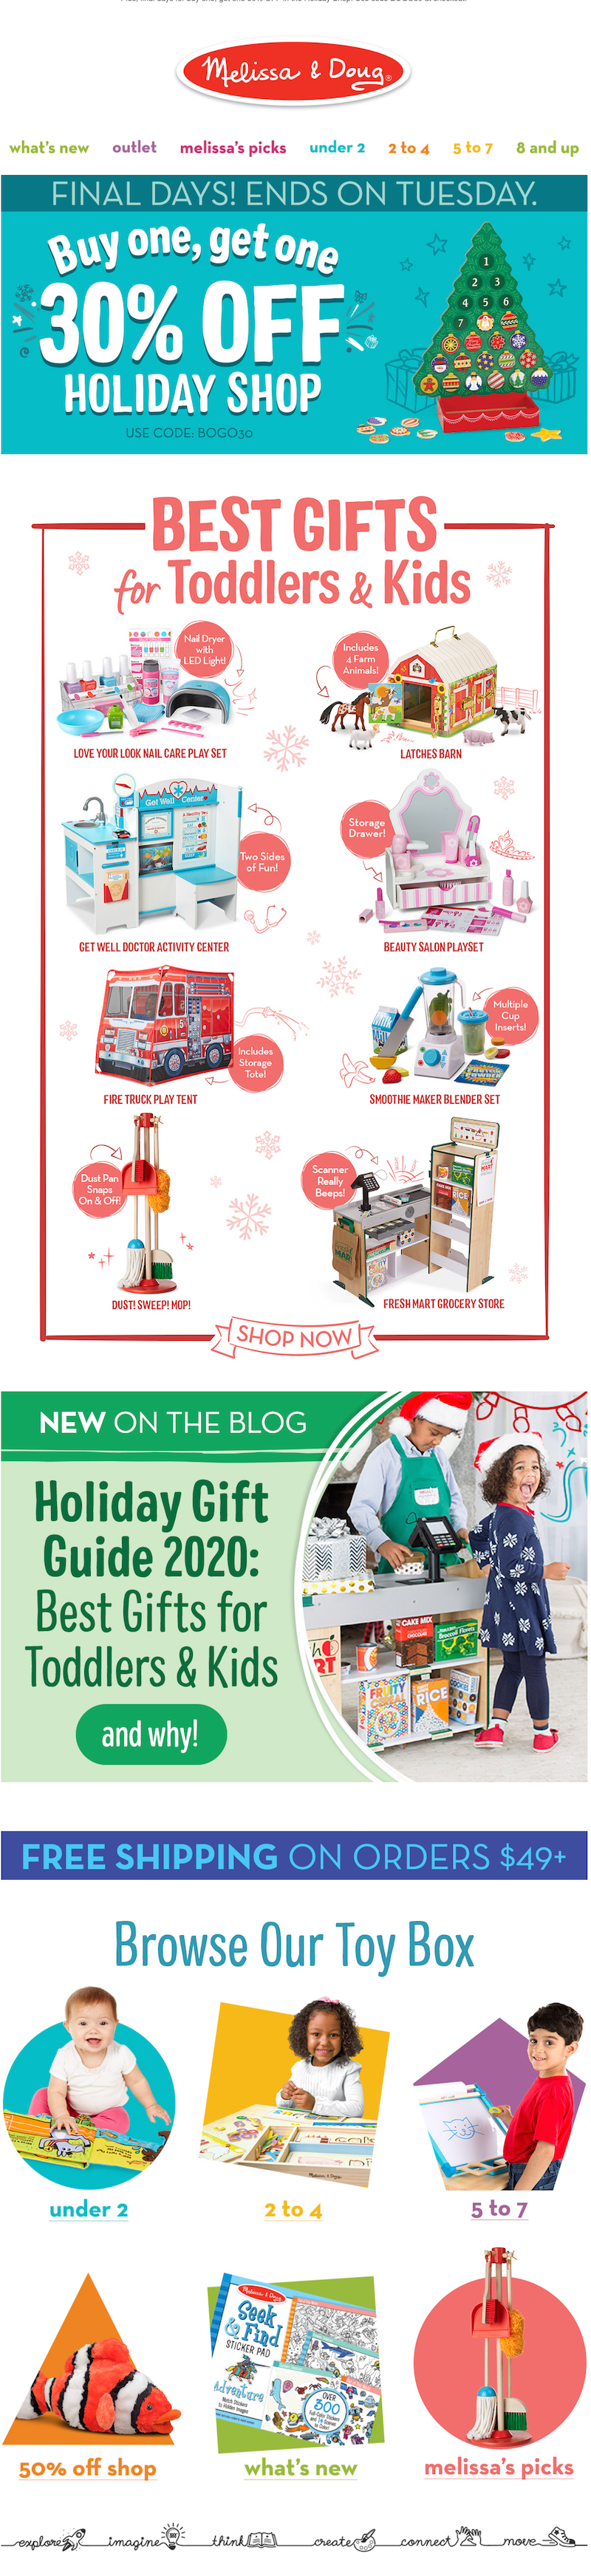 Christmas email campaign ideas